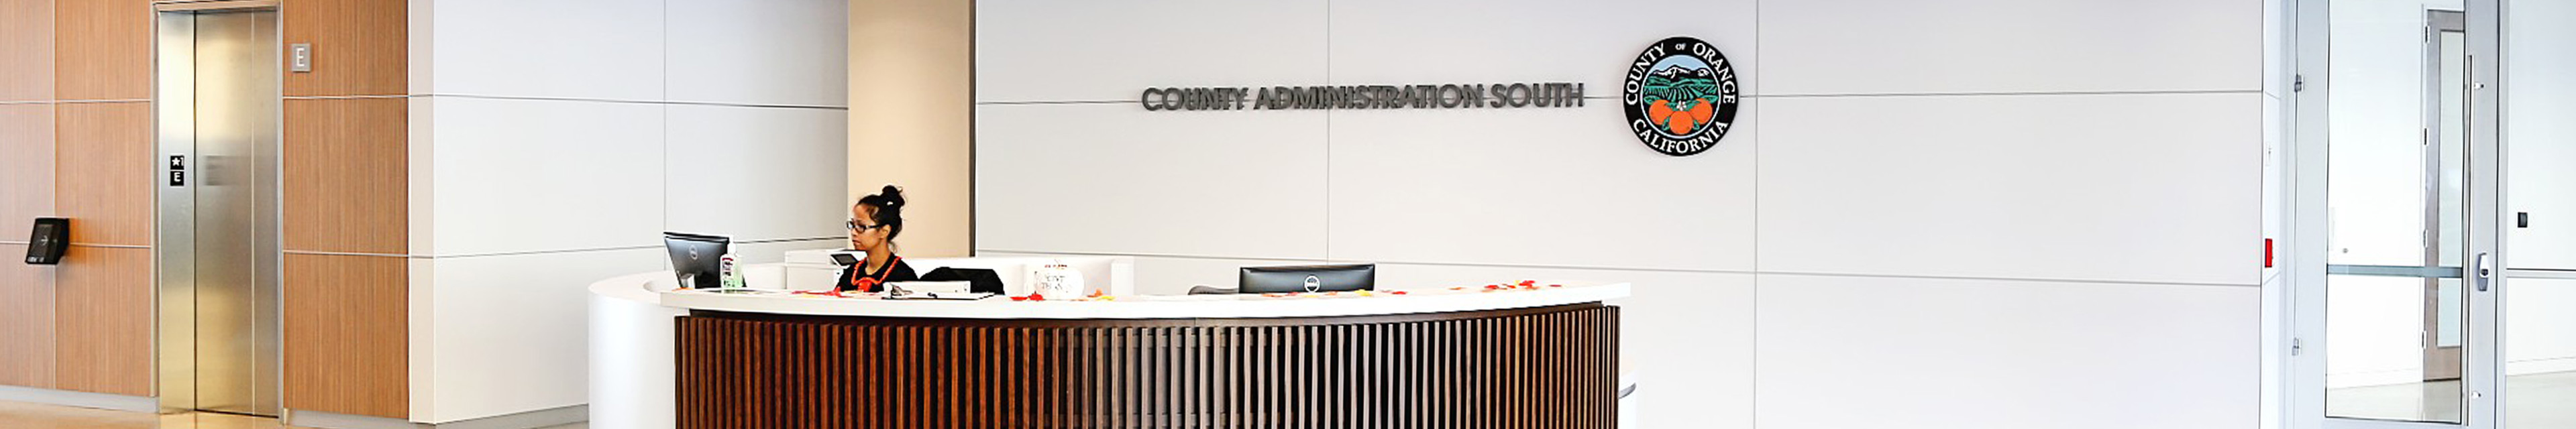 County Administration South Reception Desk